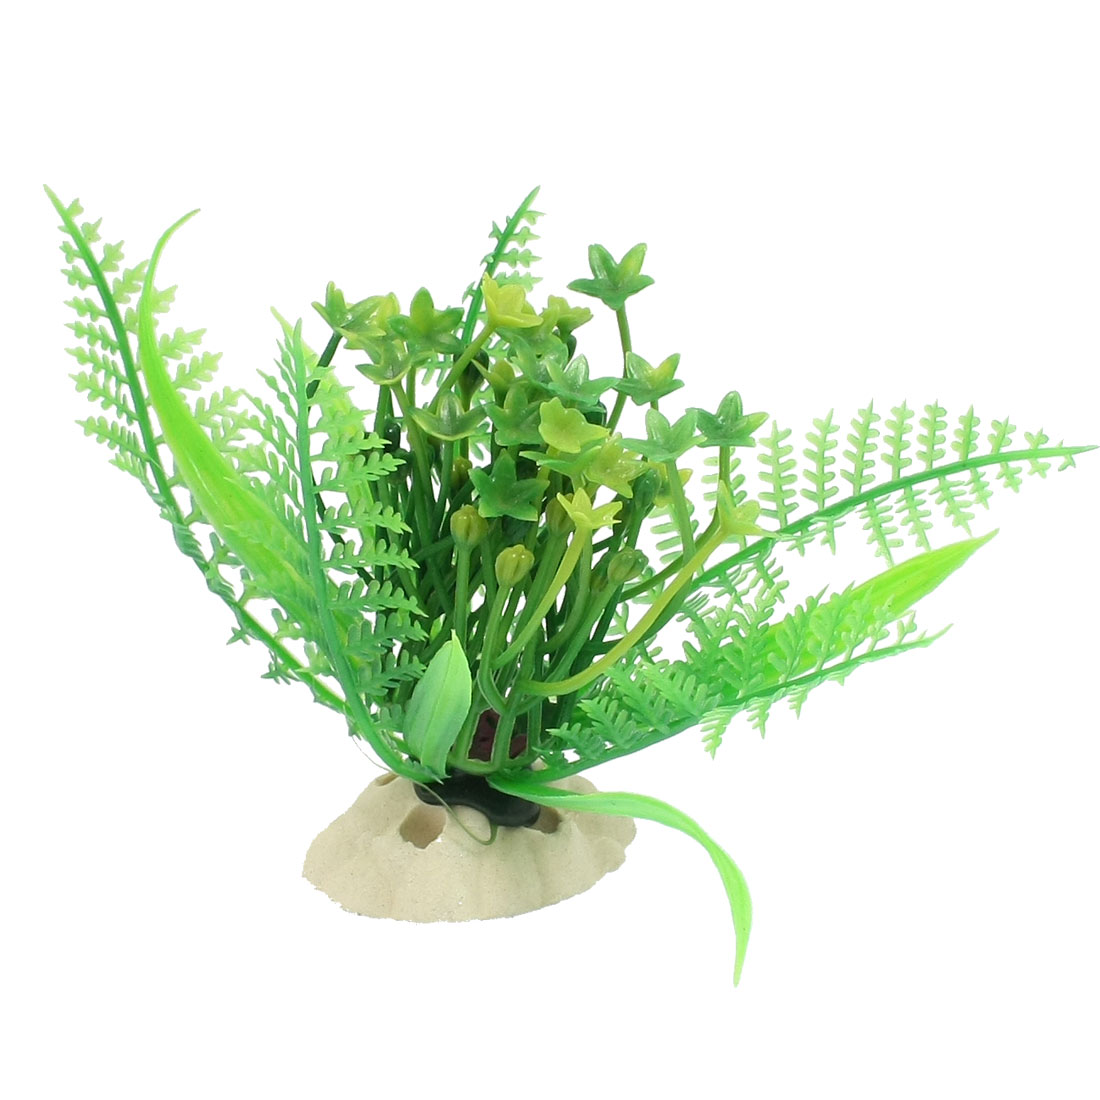 Ceramic Base Aquarium Plastic Plant Decoration Ornament Green 3.6""